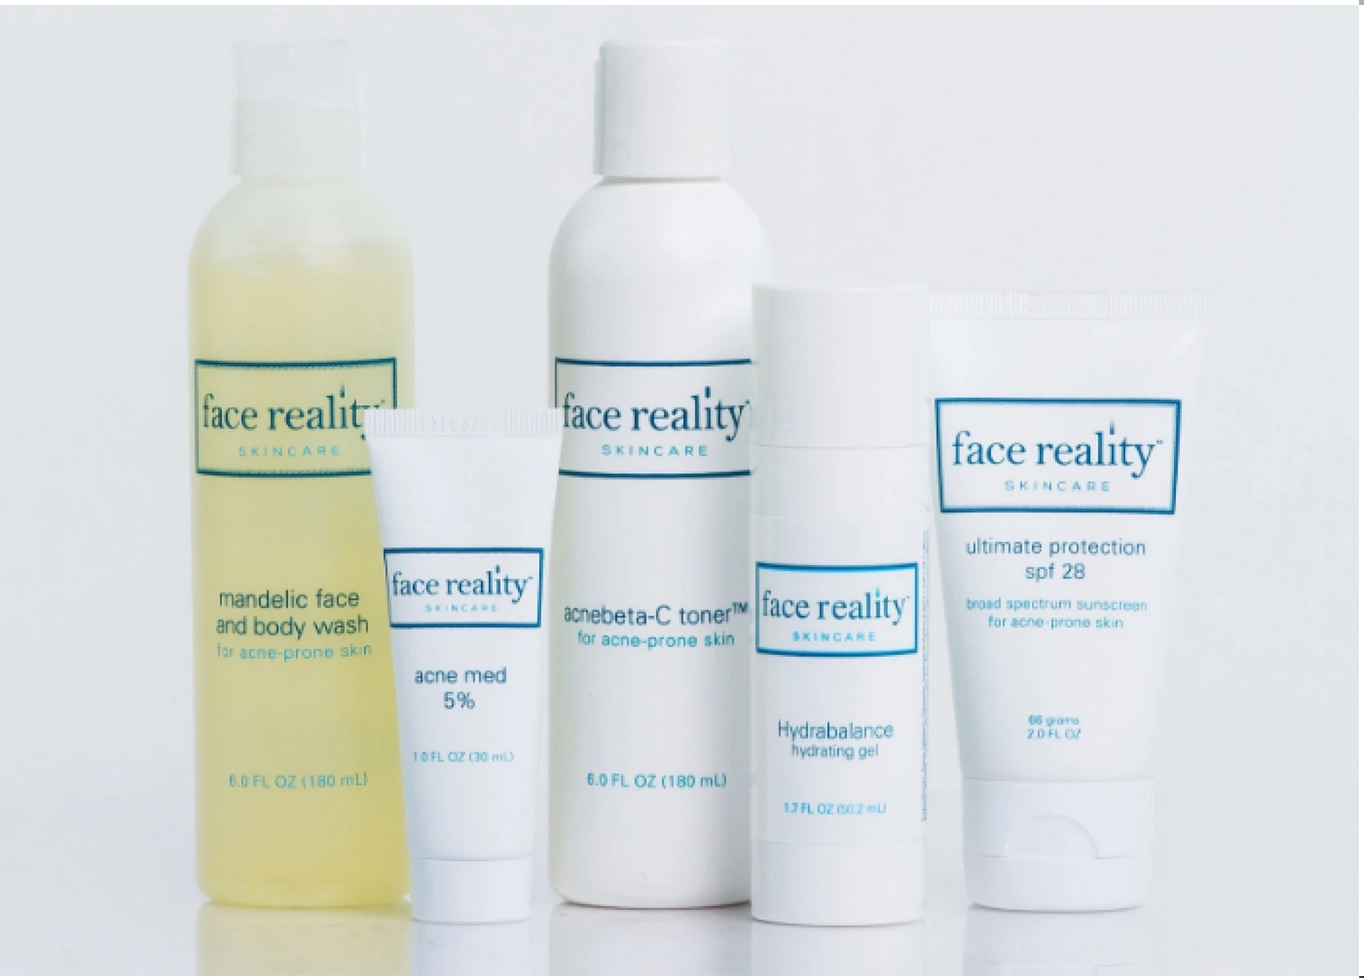 Facerealityskincare Products